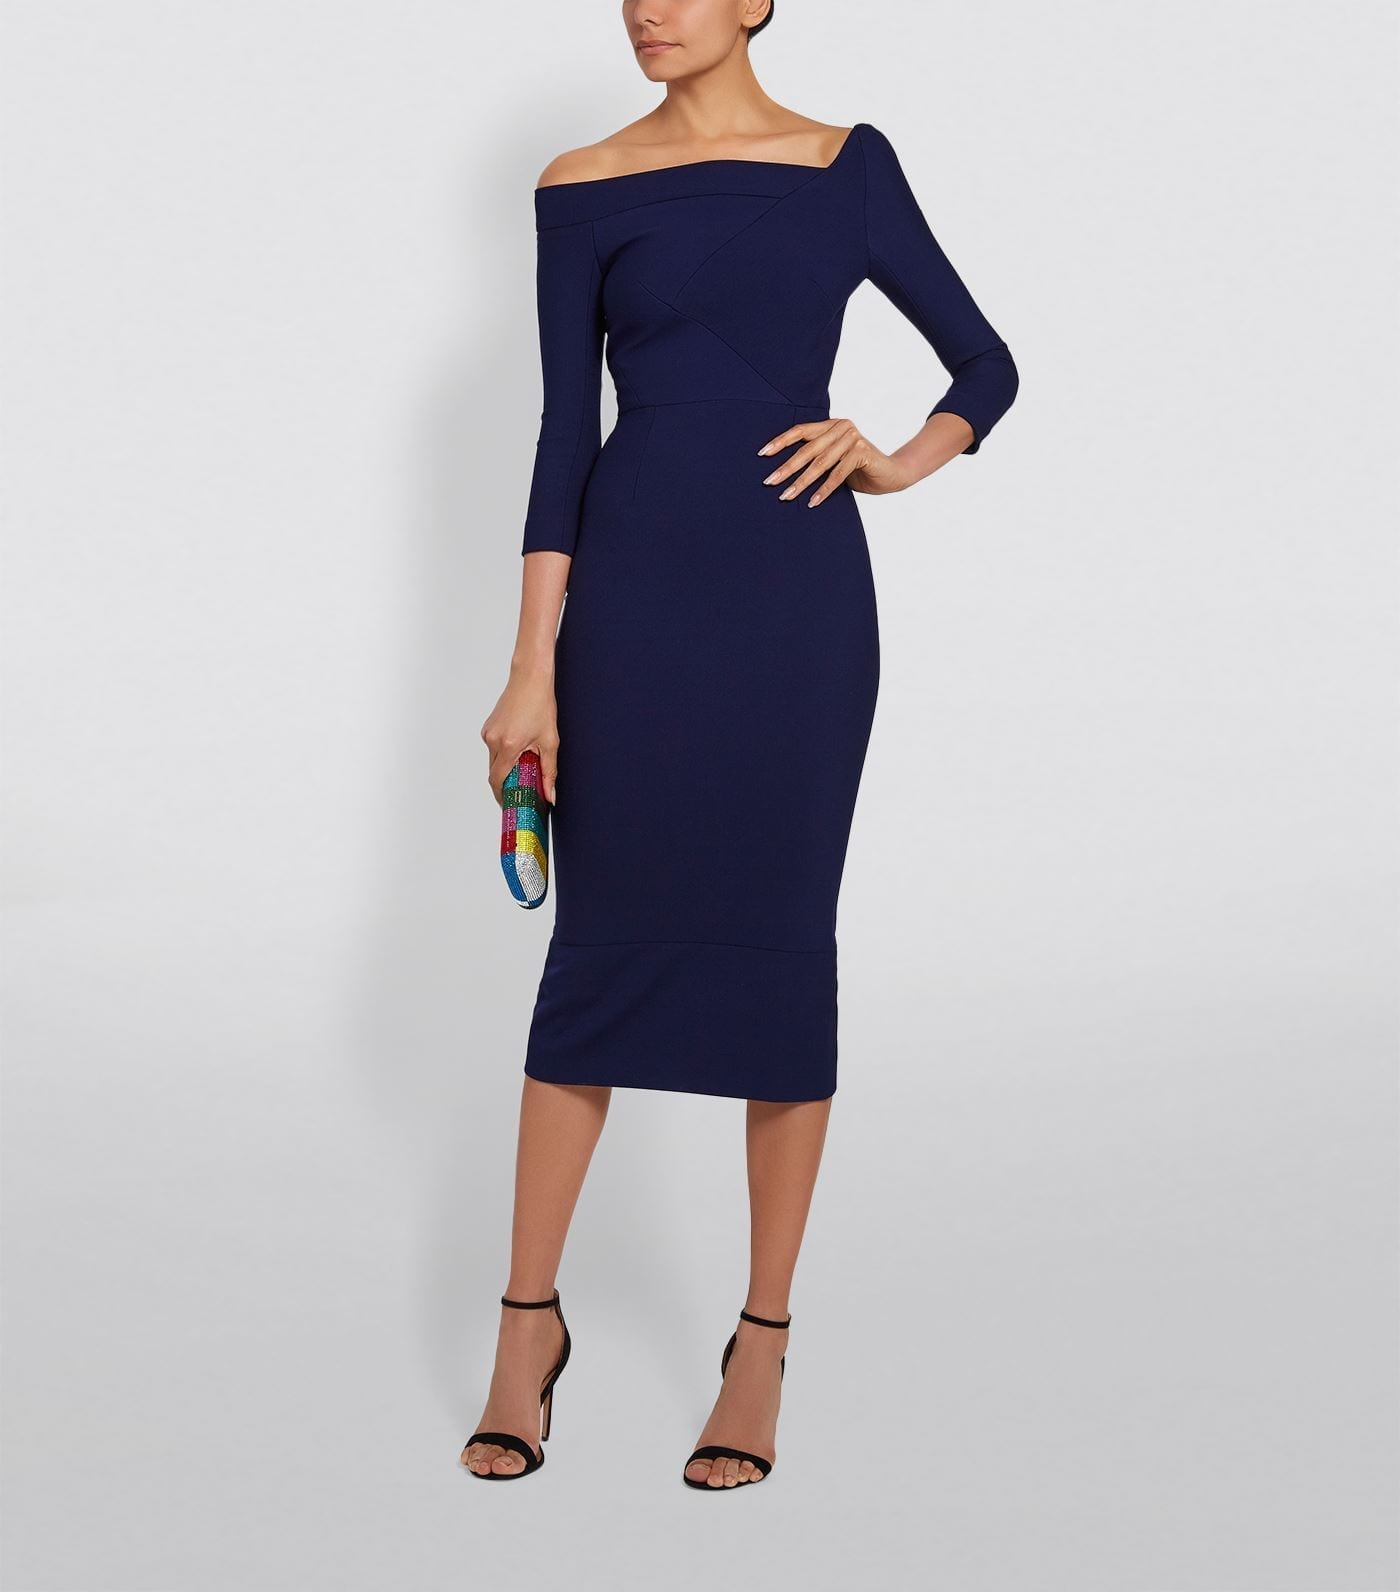 ROLAND MOURET Girtin Pencil Dress